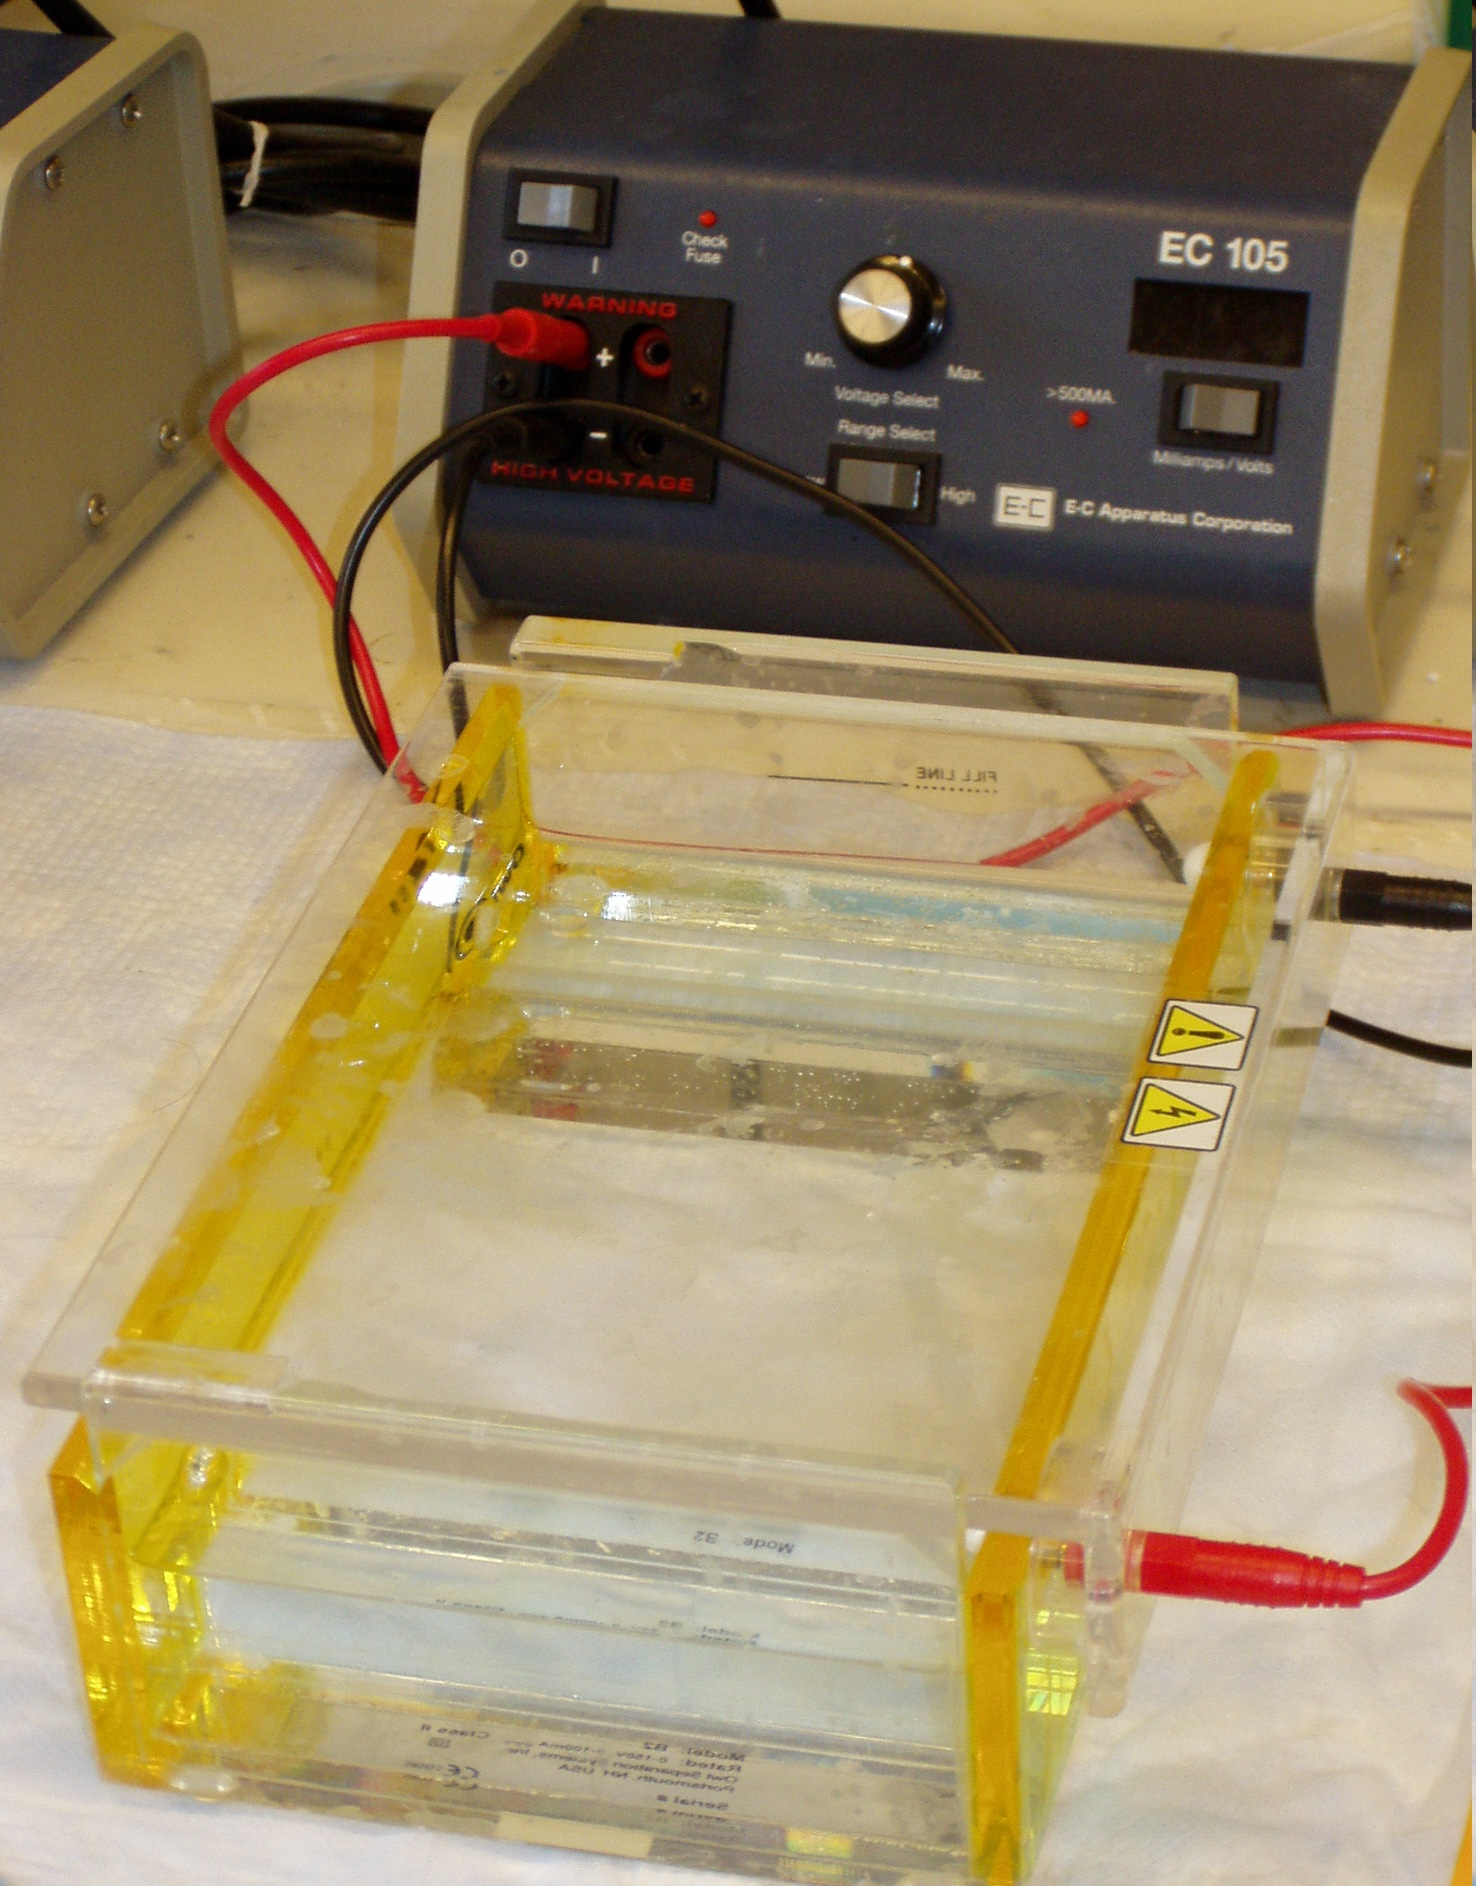 http://upload.wikimedia.org/wikipedia/commons/a/a6/Gel_electrophoresis_apparatus.JPG